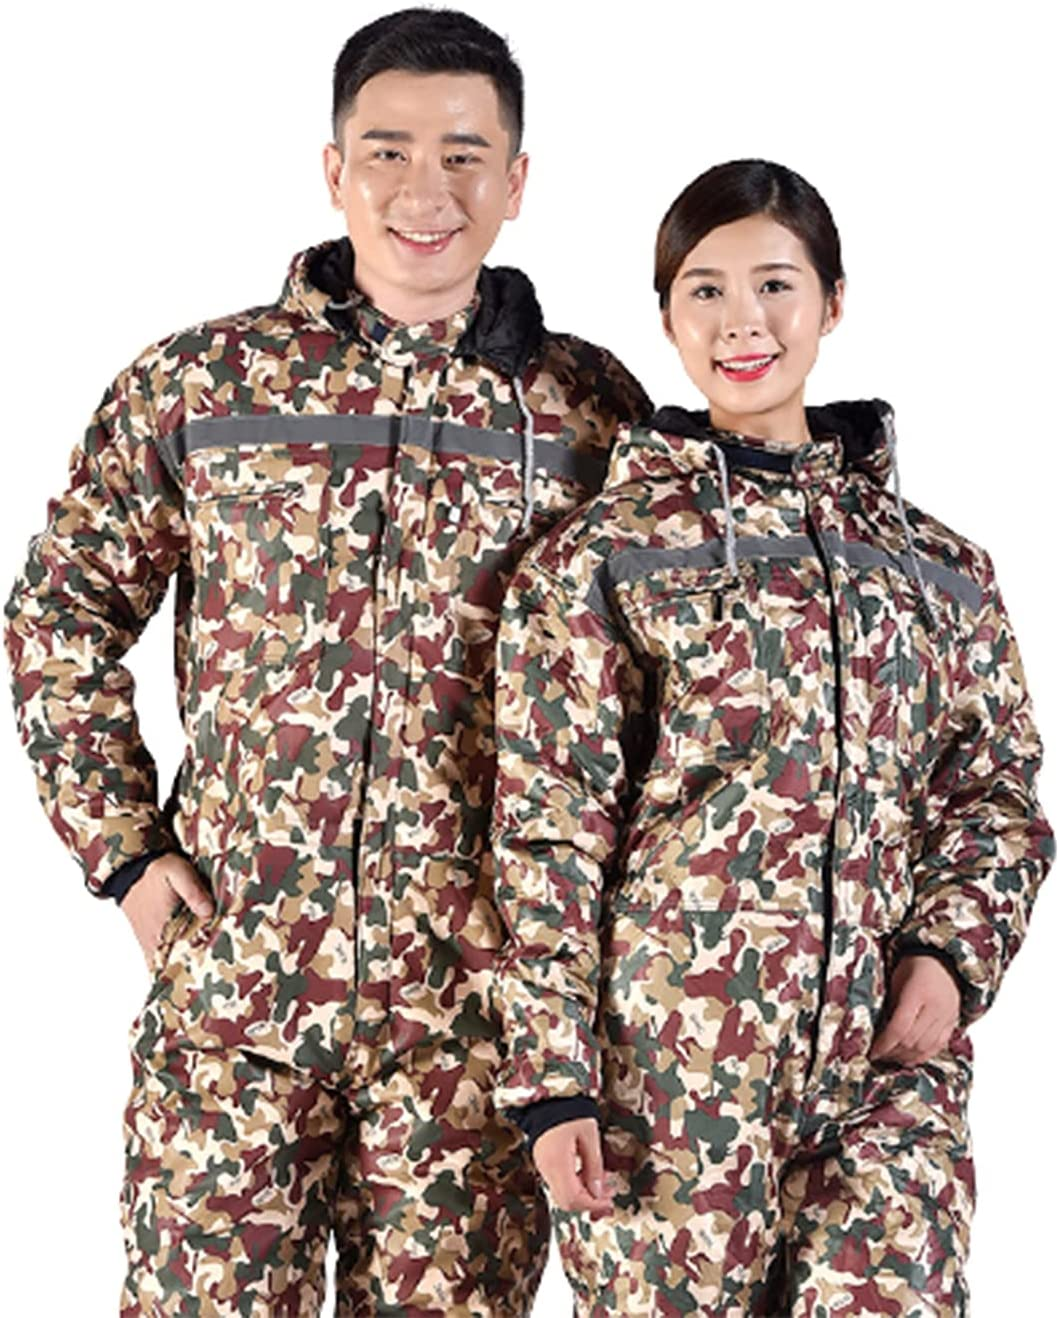 WFGZQ Mens Coveralls Fort Worth Mall 2021 model Hardwearing Overalls Thermal Functional Wor